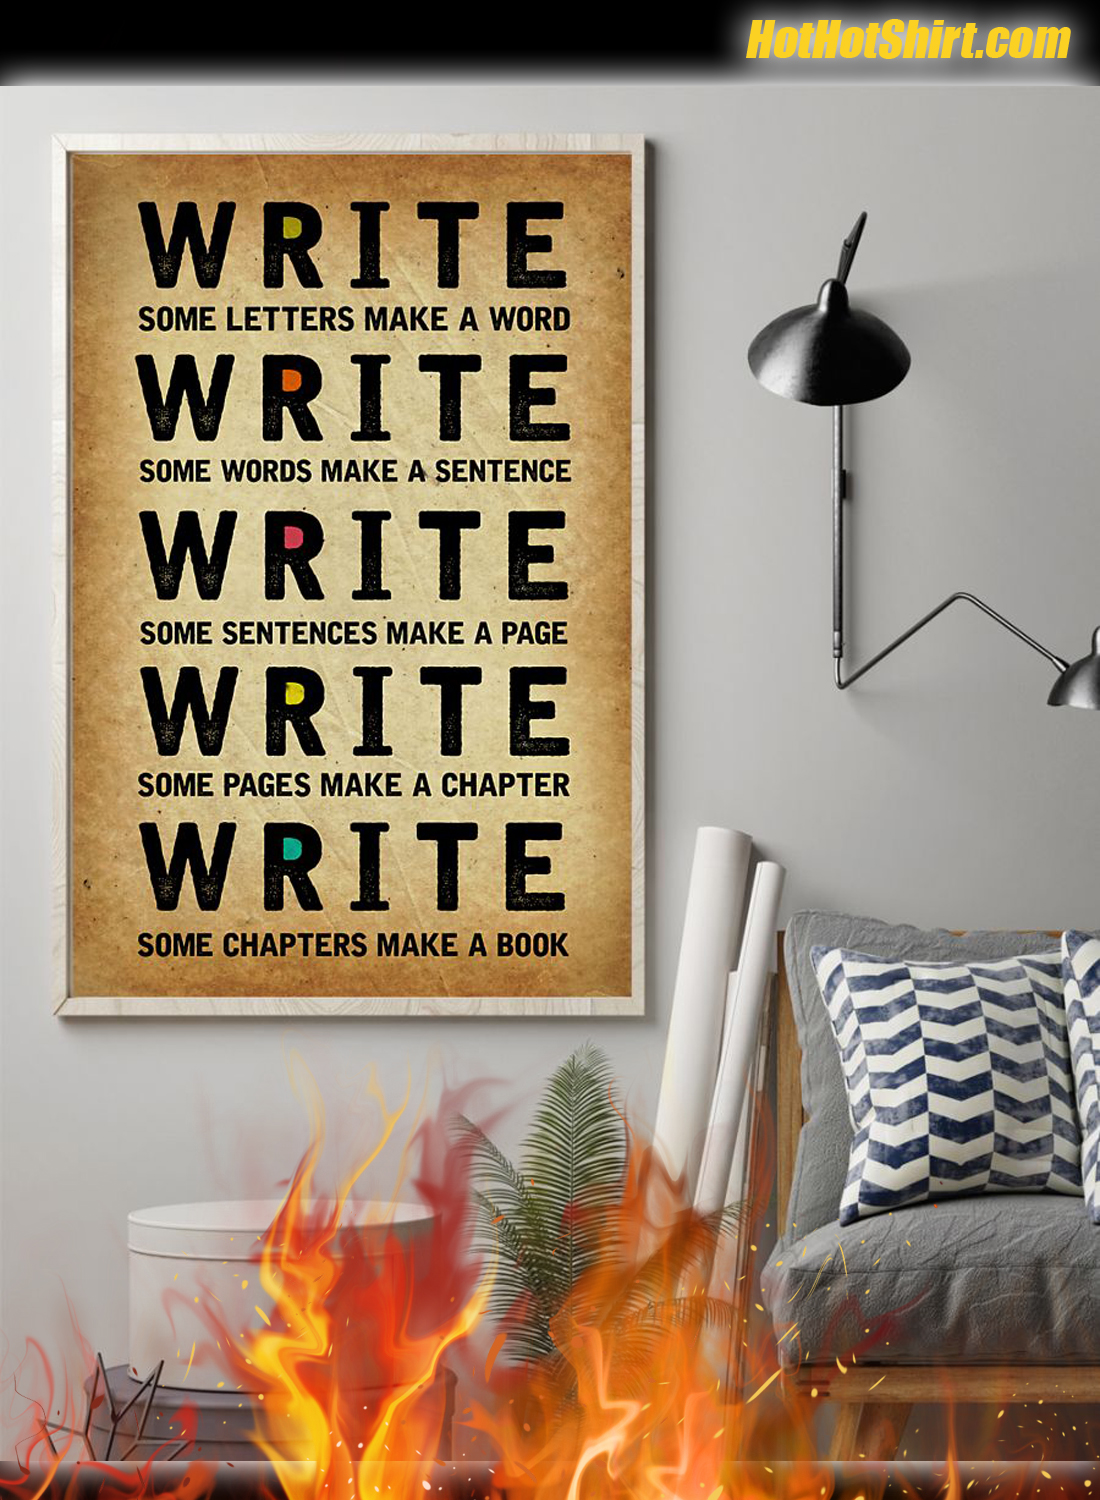 Write Some Letters Make A Word Poster 1